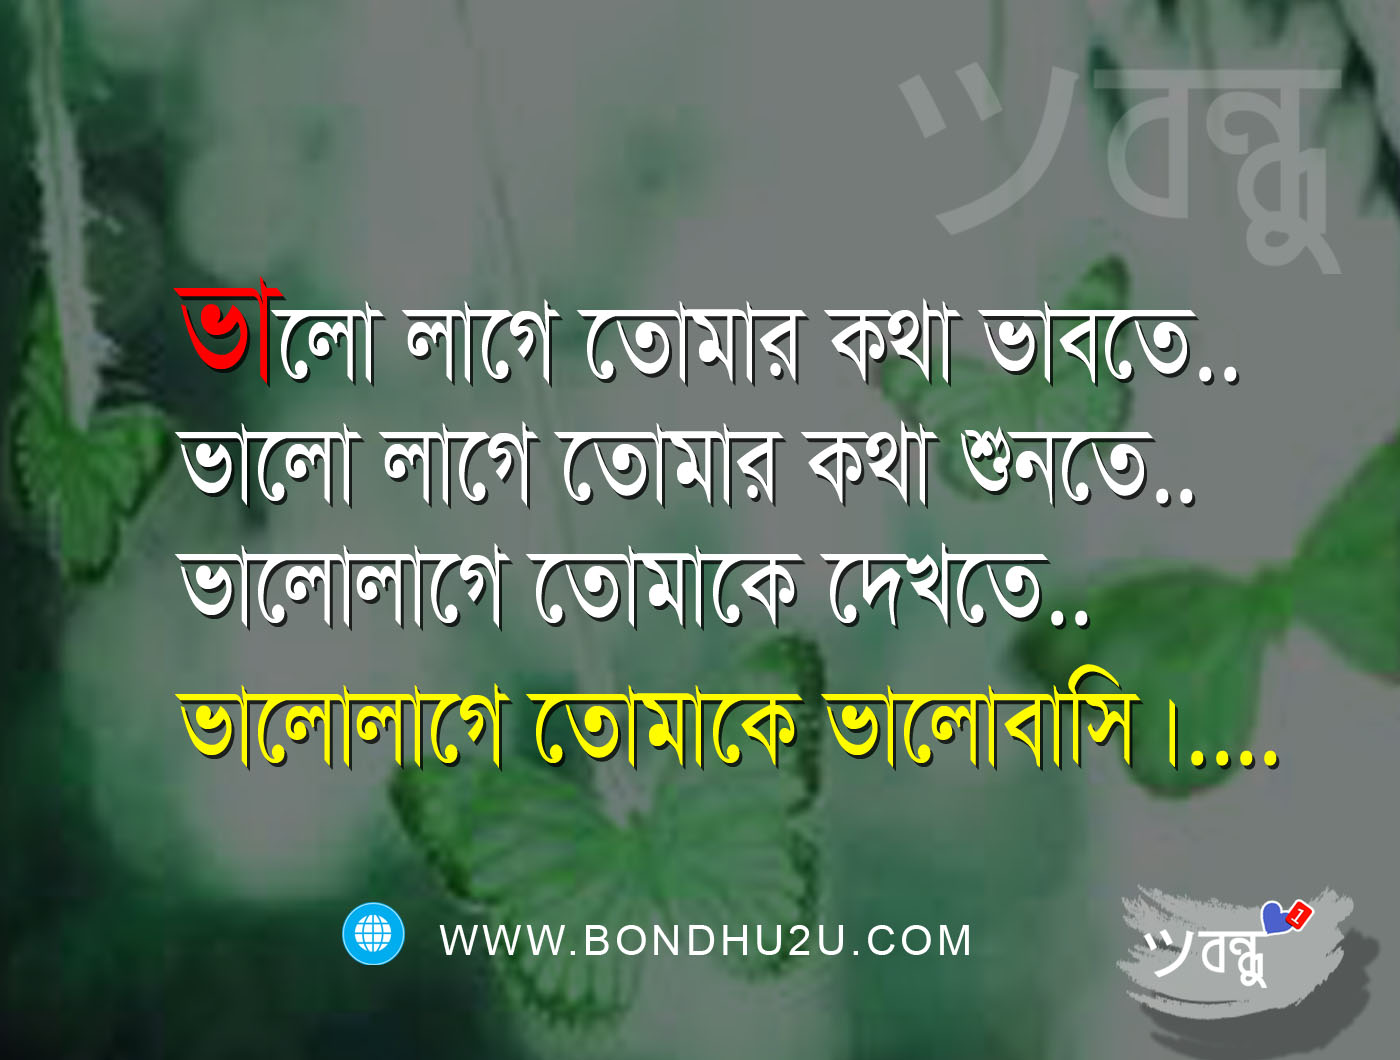 Bangla Funny Love Wallpaper : bangla valobashar comment, bangla love image, bangla romantic kobita line,bangla romantic kobita ...